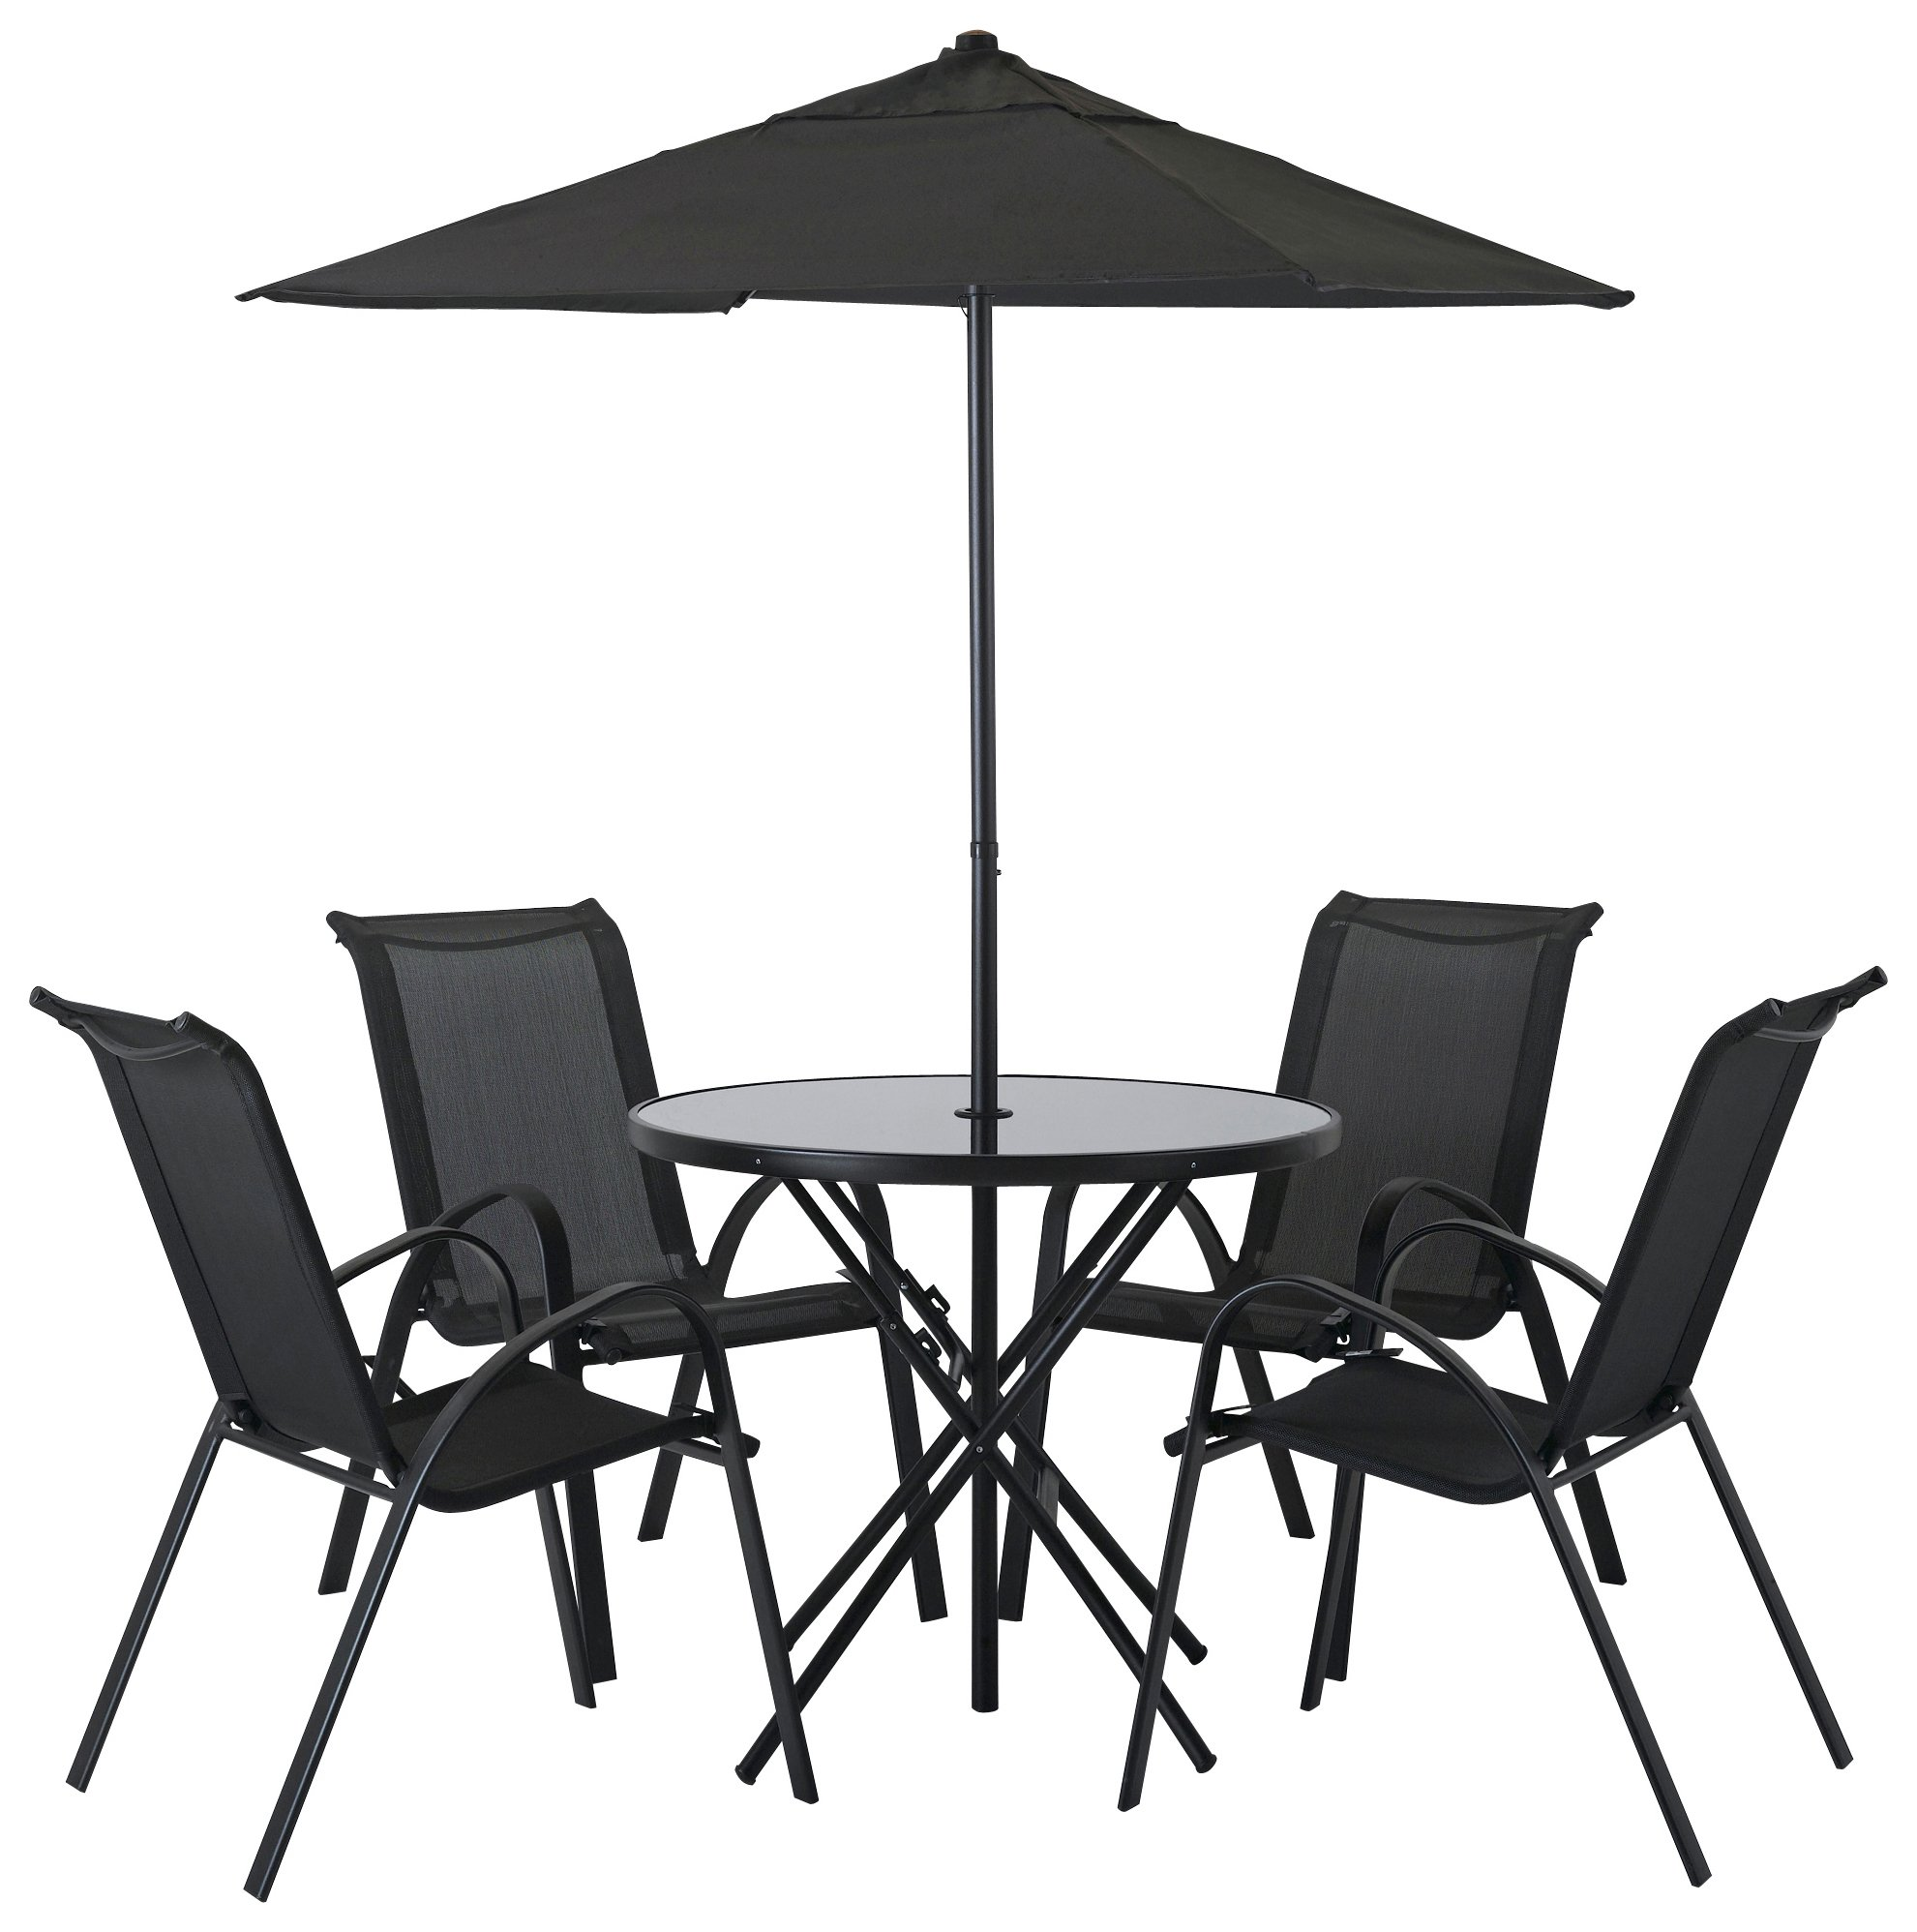 Buy HOME Sicily 4 Seater Patio Furniture Set At Argos.co.uk   Your Online  Shop For Garden Table And Chair Sets, Garden Furniture, Home And Garden.